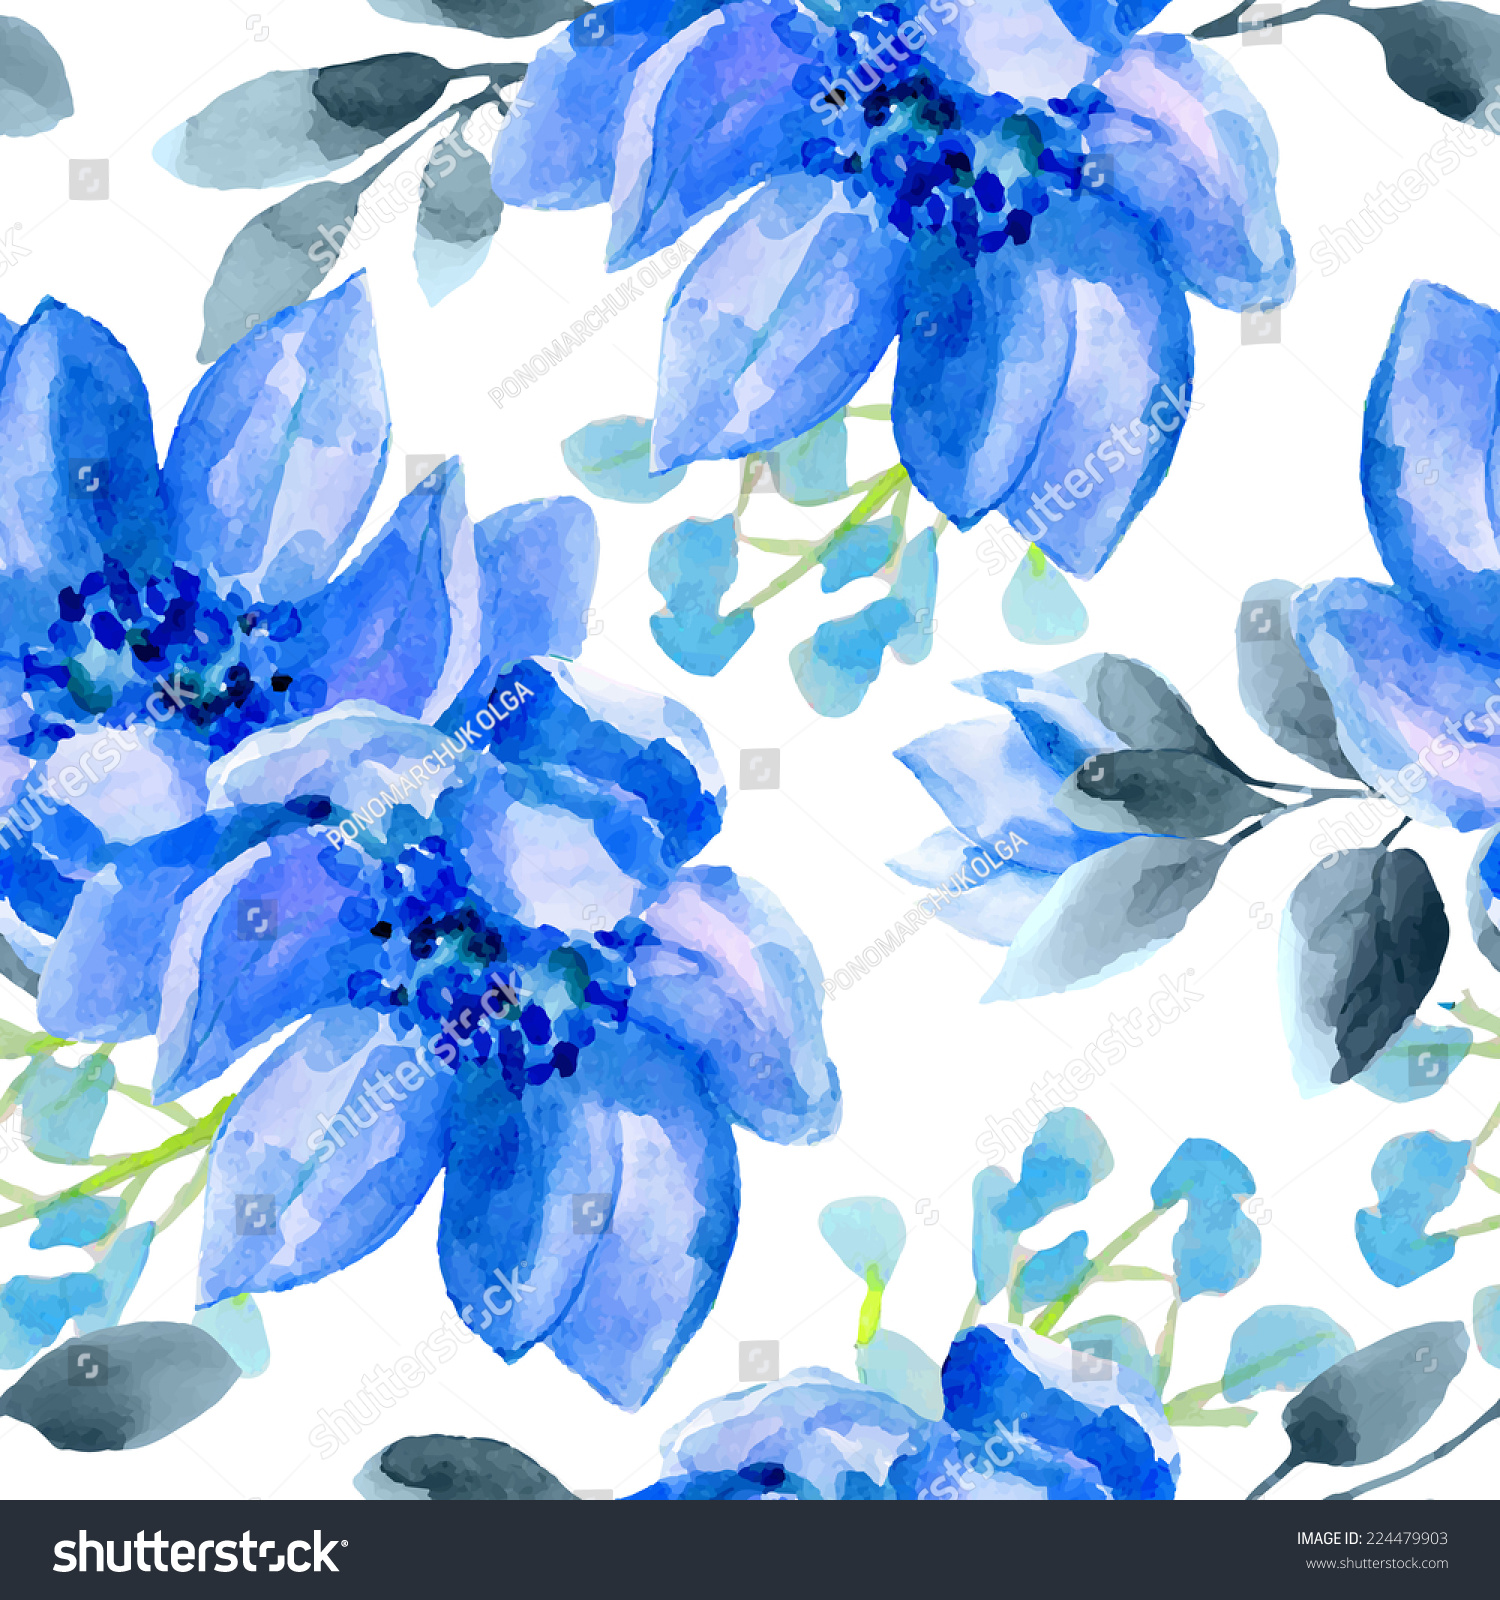 Seamless Wallpaper Blue Flowers Watercolor Illustration Stock